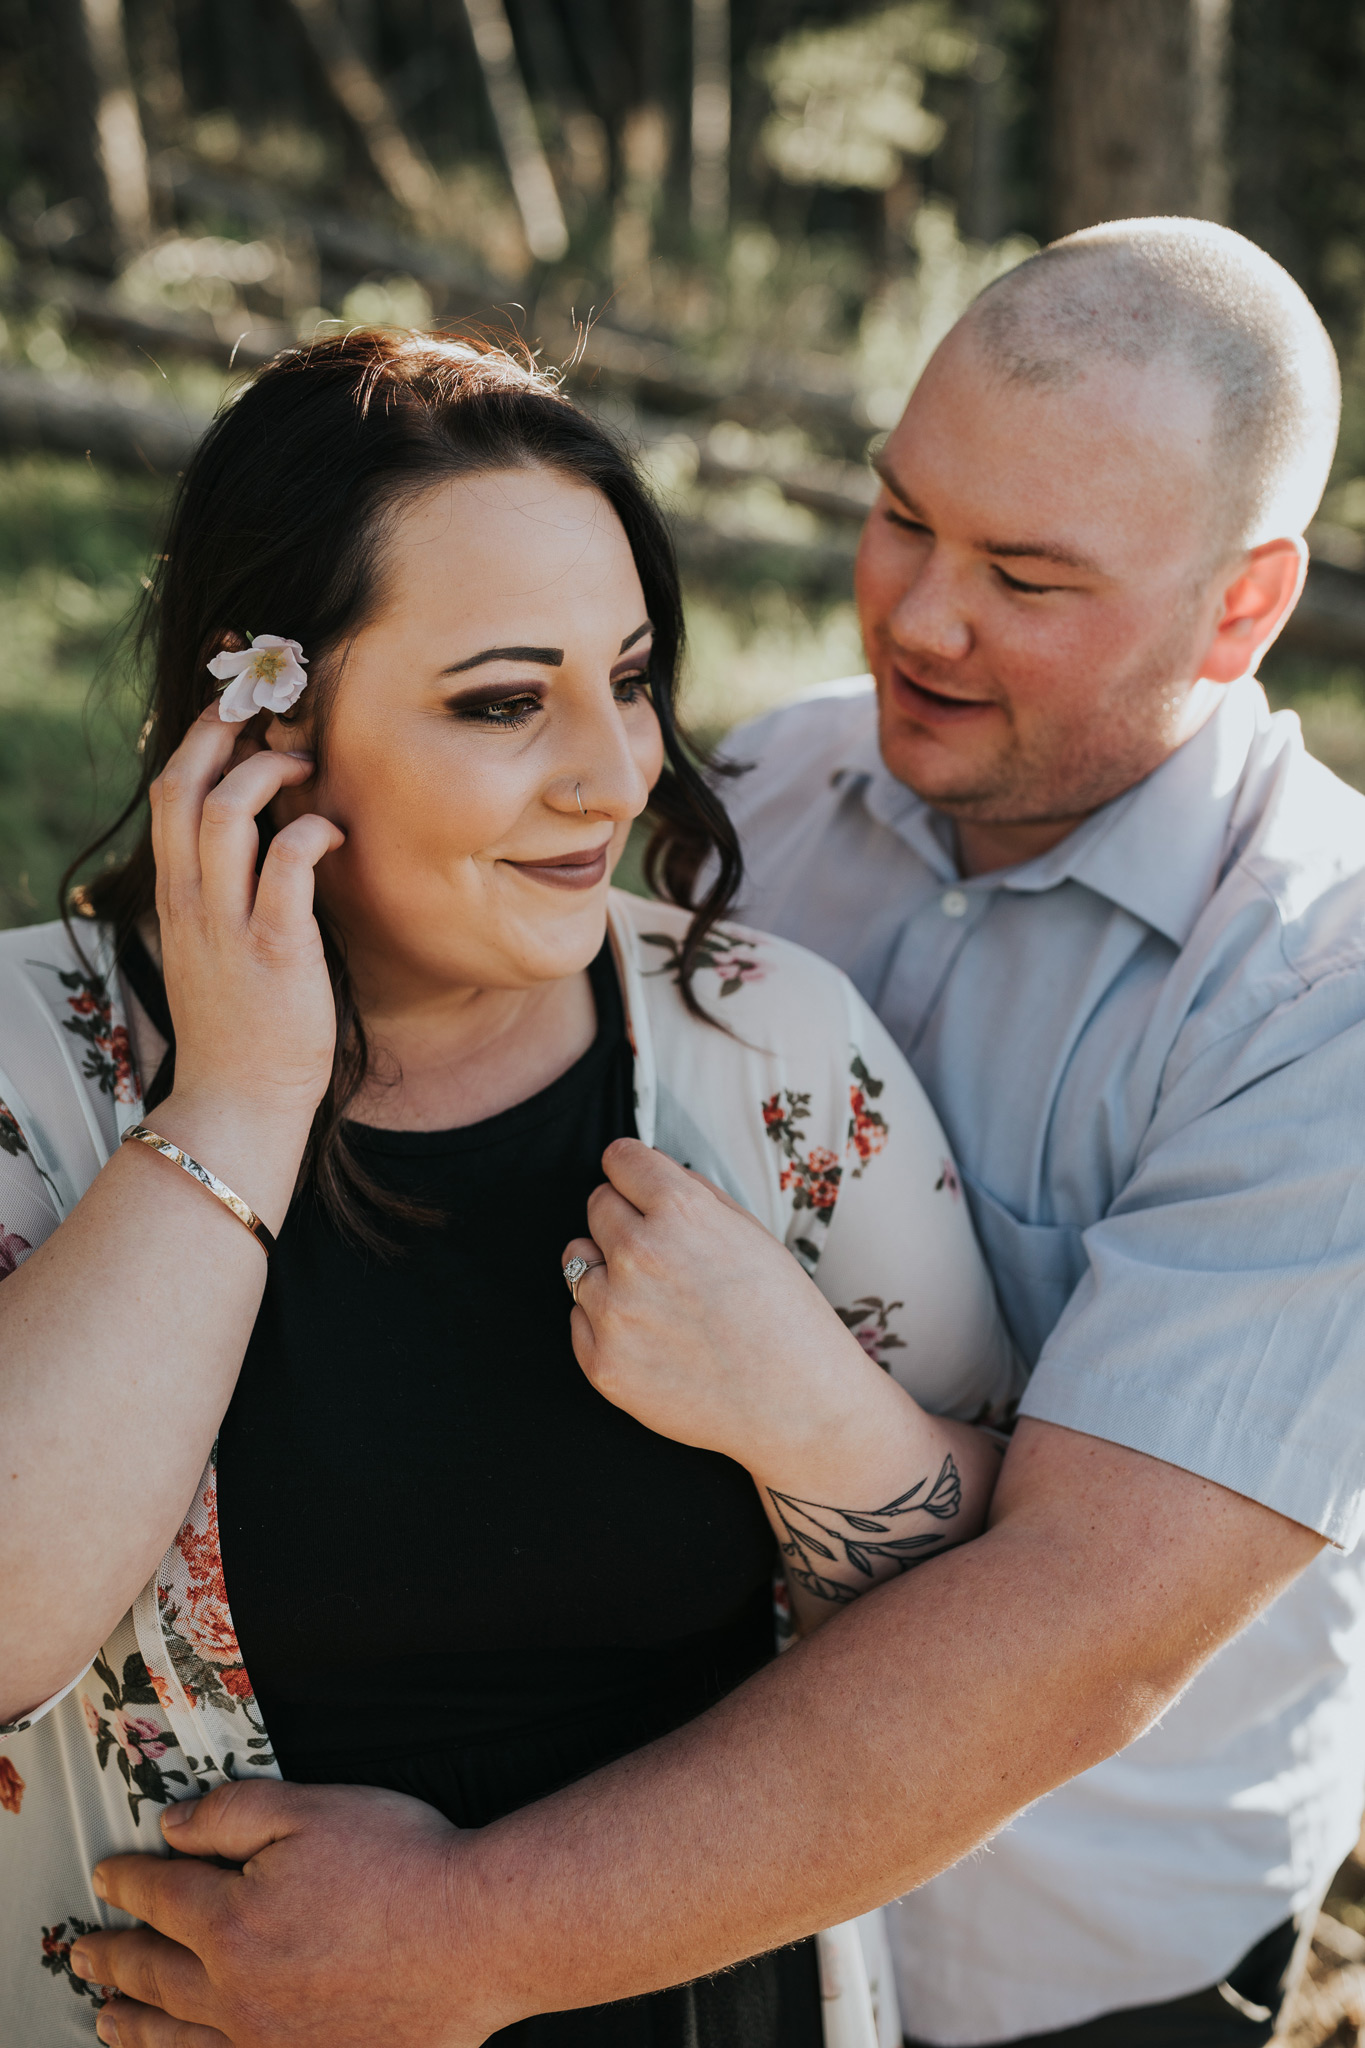 man embraces fiancé as she brushes hair behind ear